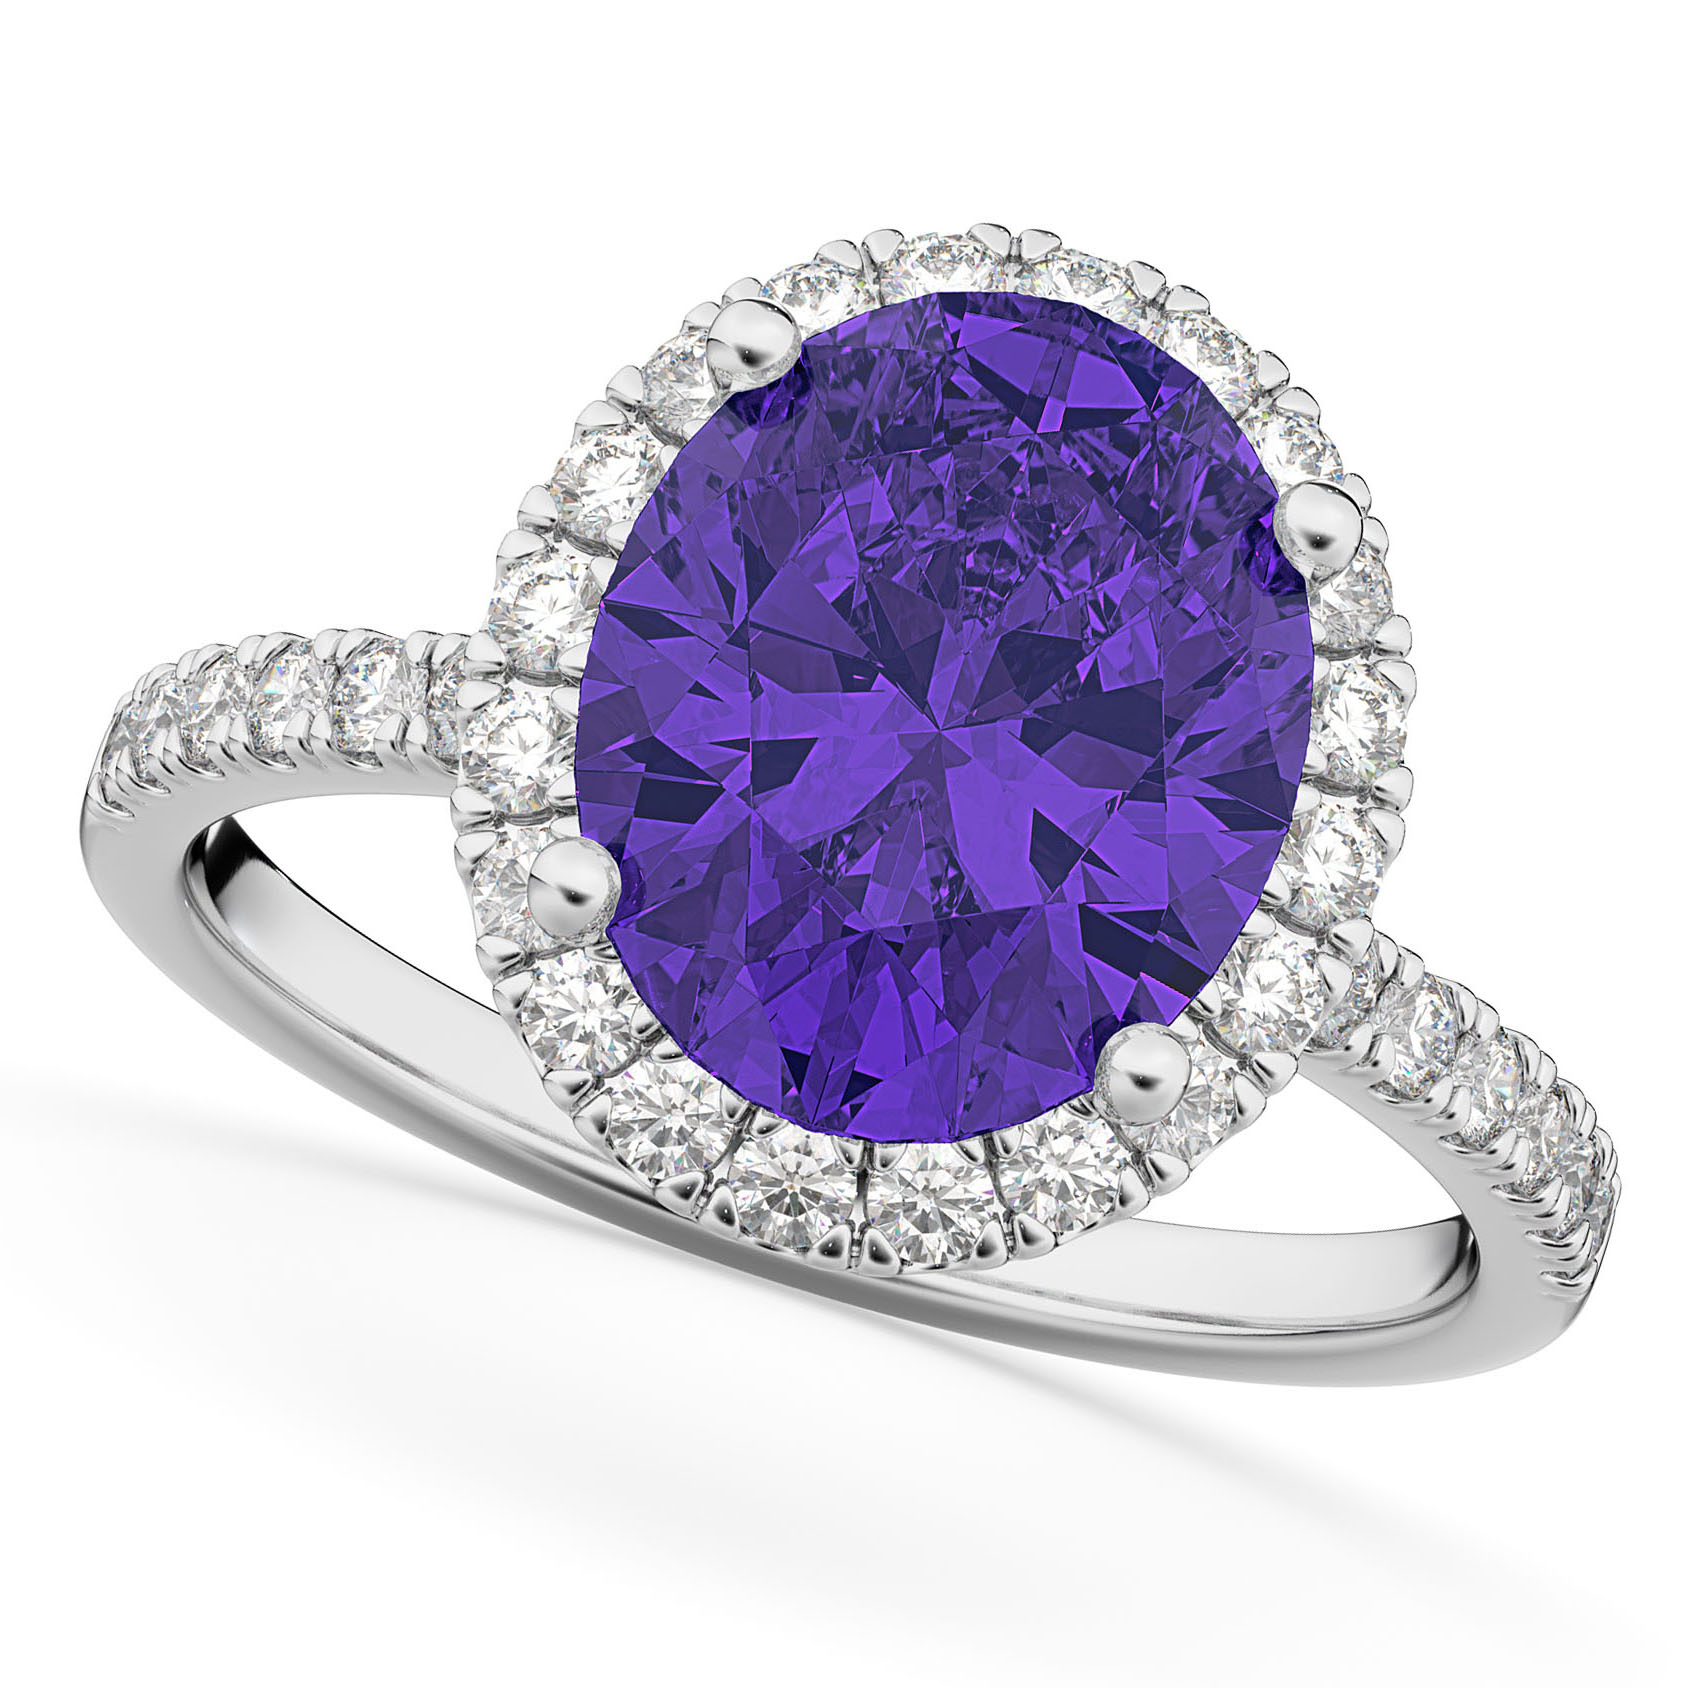 Oval Cut Halo Tanzanite & Diamond Engagement Ring 14K White Gold 3.66ct